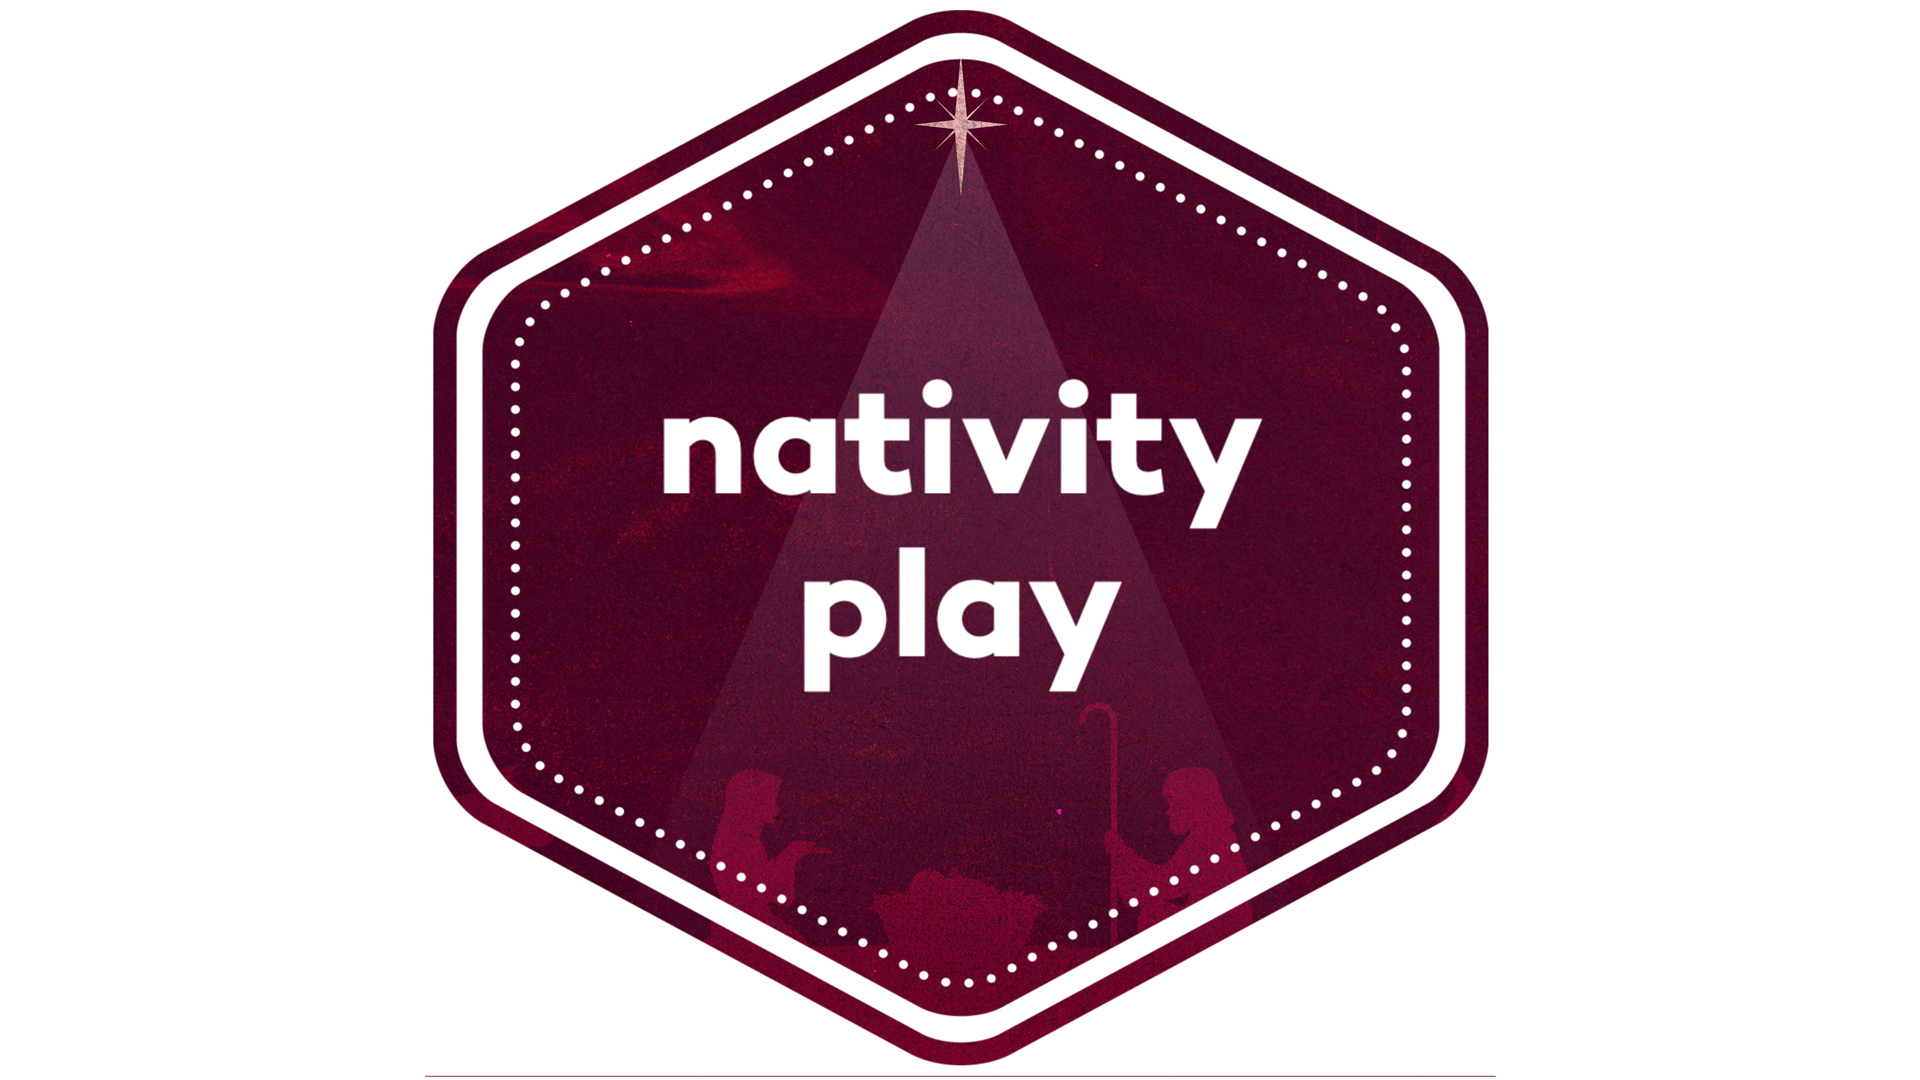 Nativity Play - Wide image